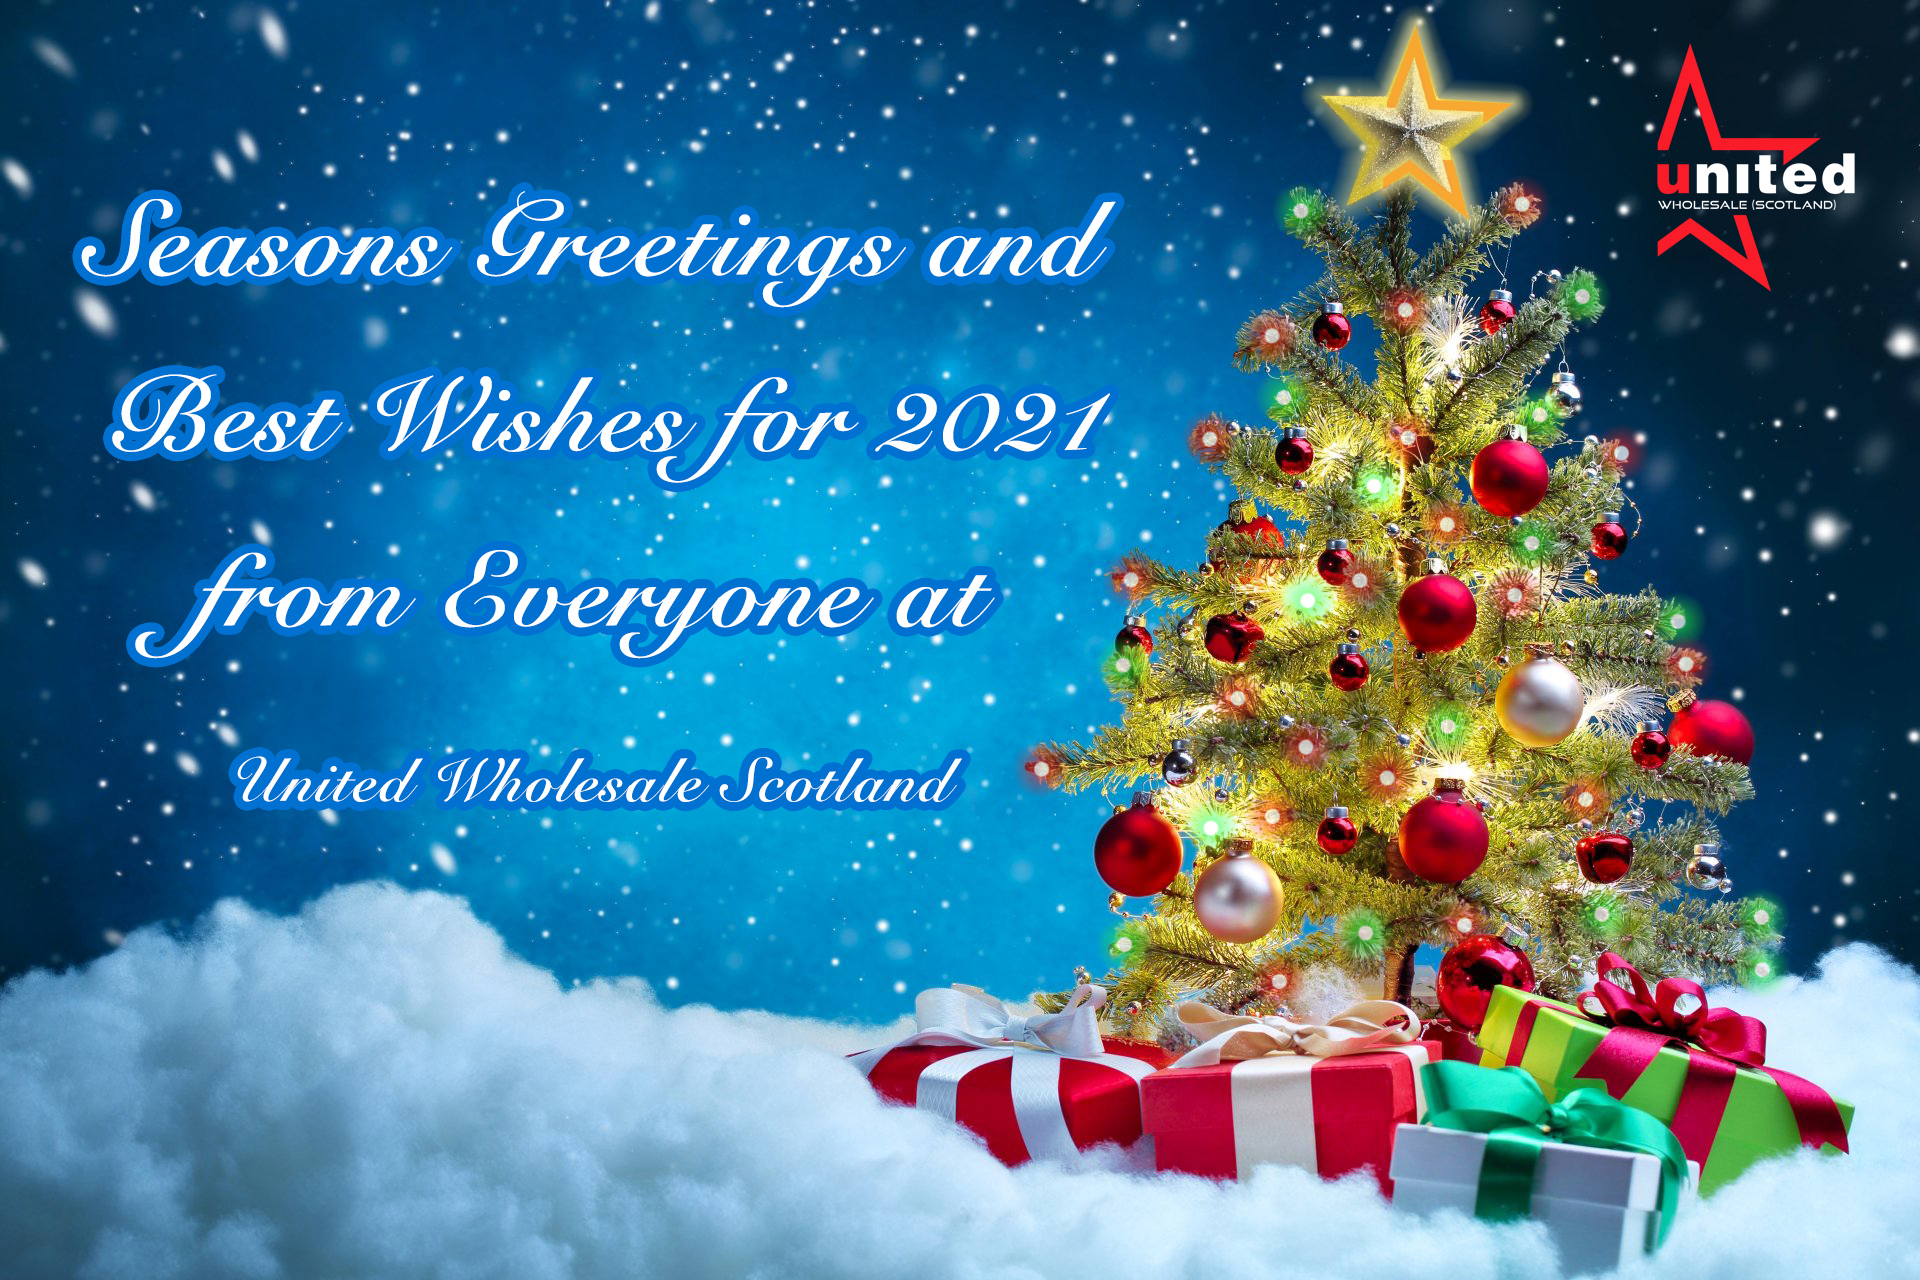 Merry XMAS Card - Seasons greetings and best wishes for 2021 from everyone at United Wholesale Scotland cash and carry